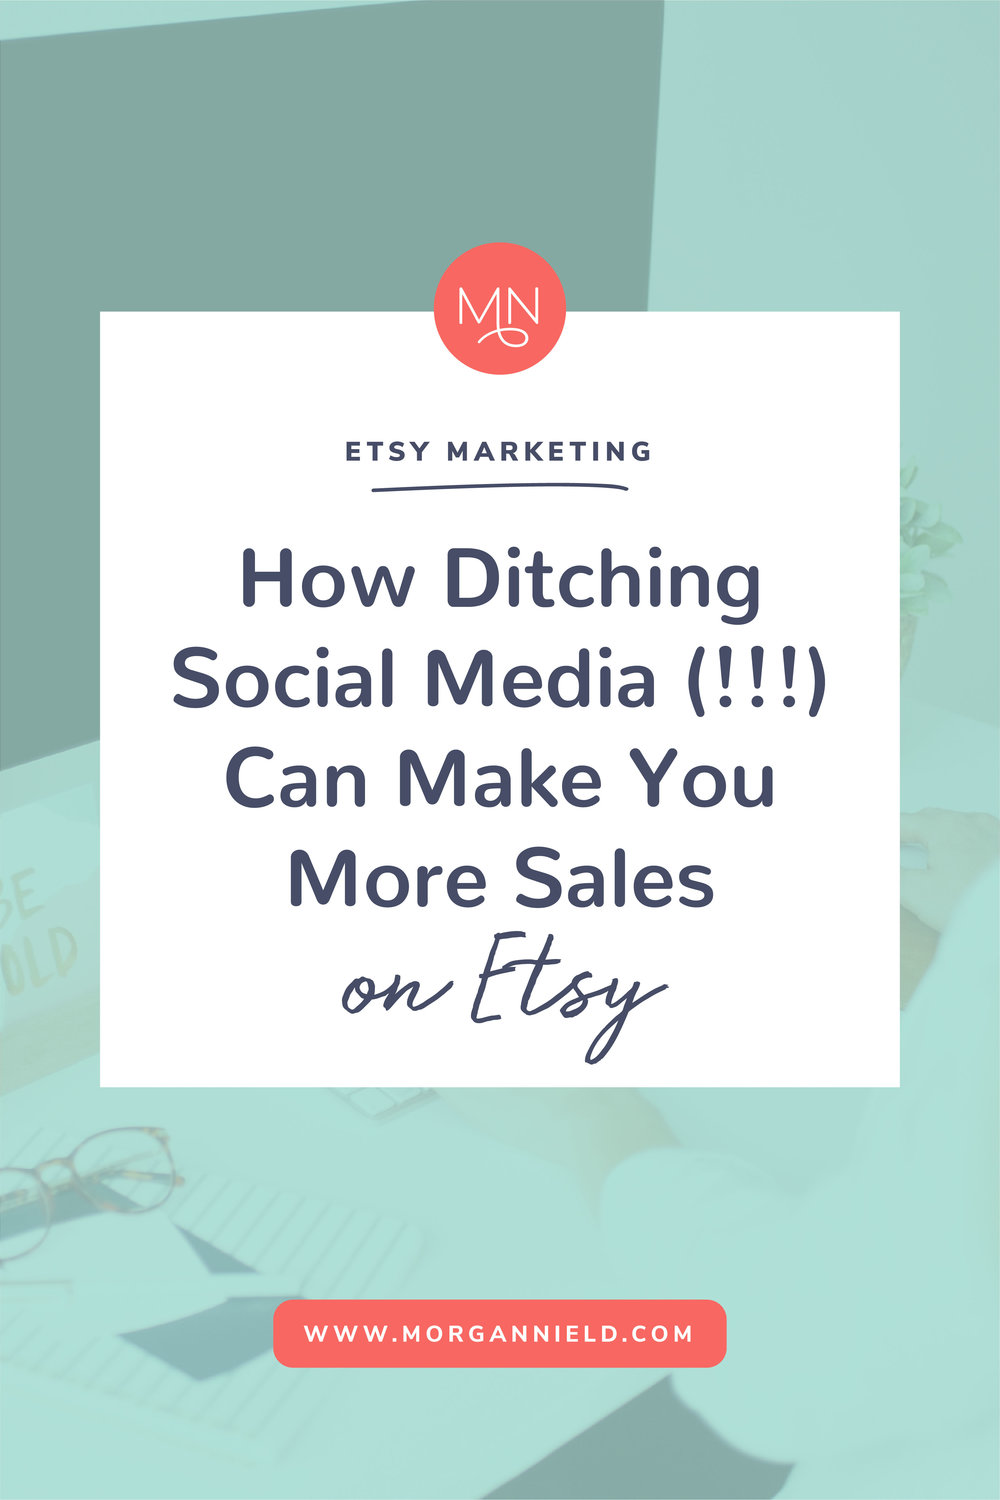 [BI] How Ditching Social Media can make you more sales-06.jpg